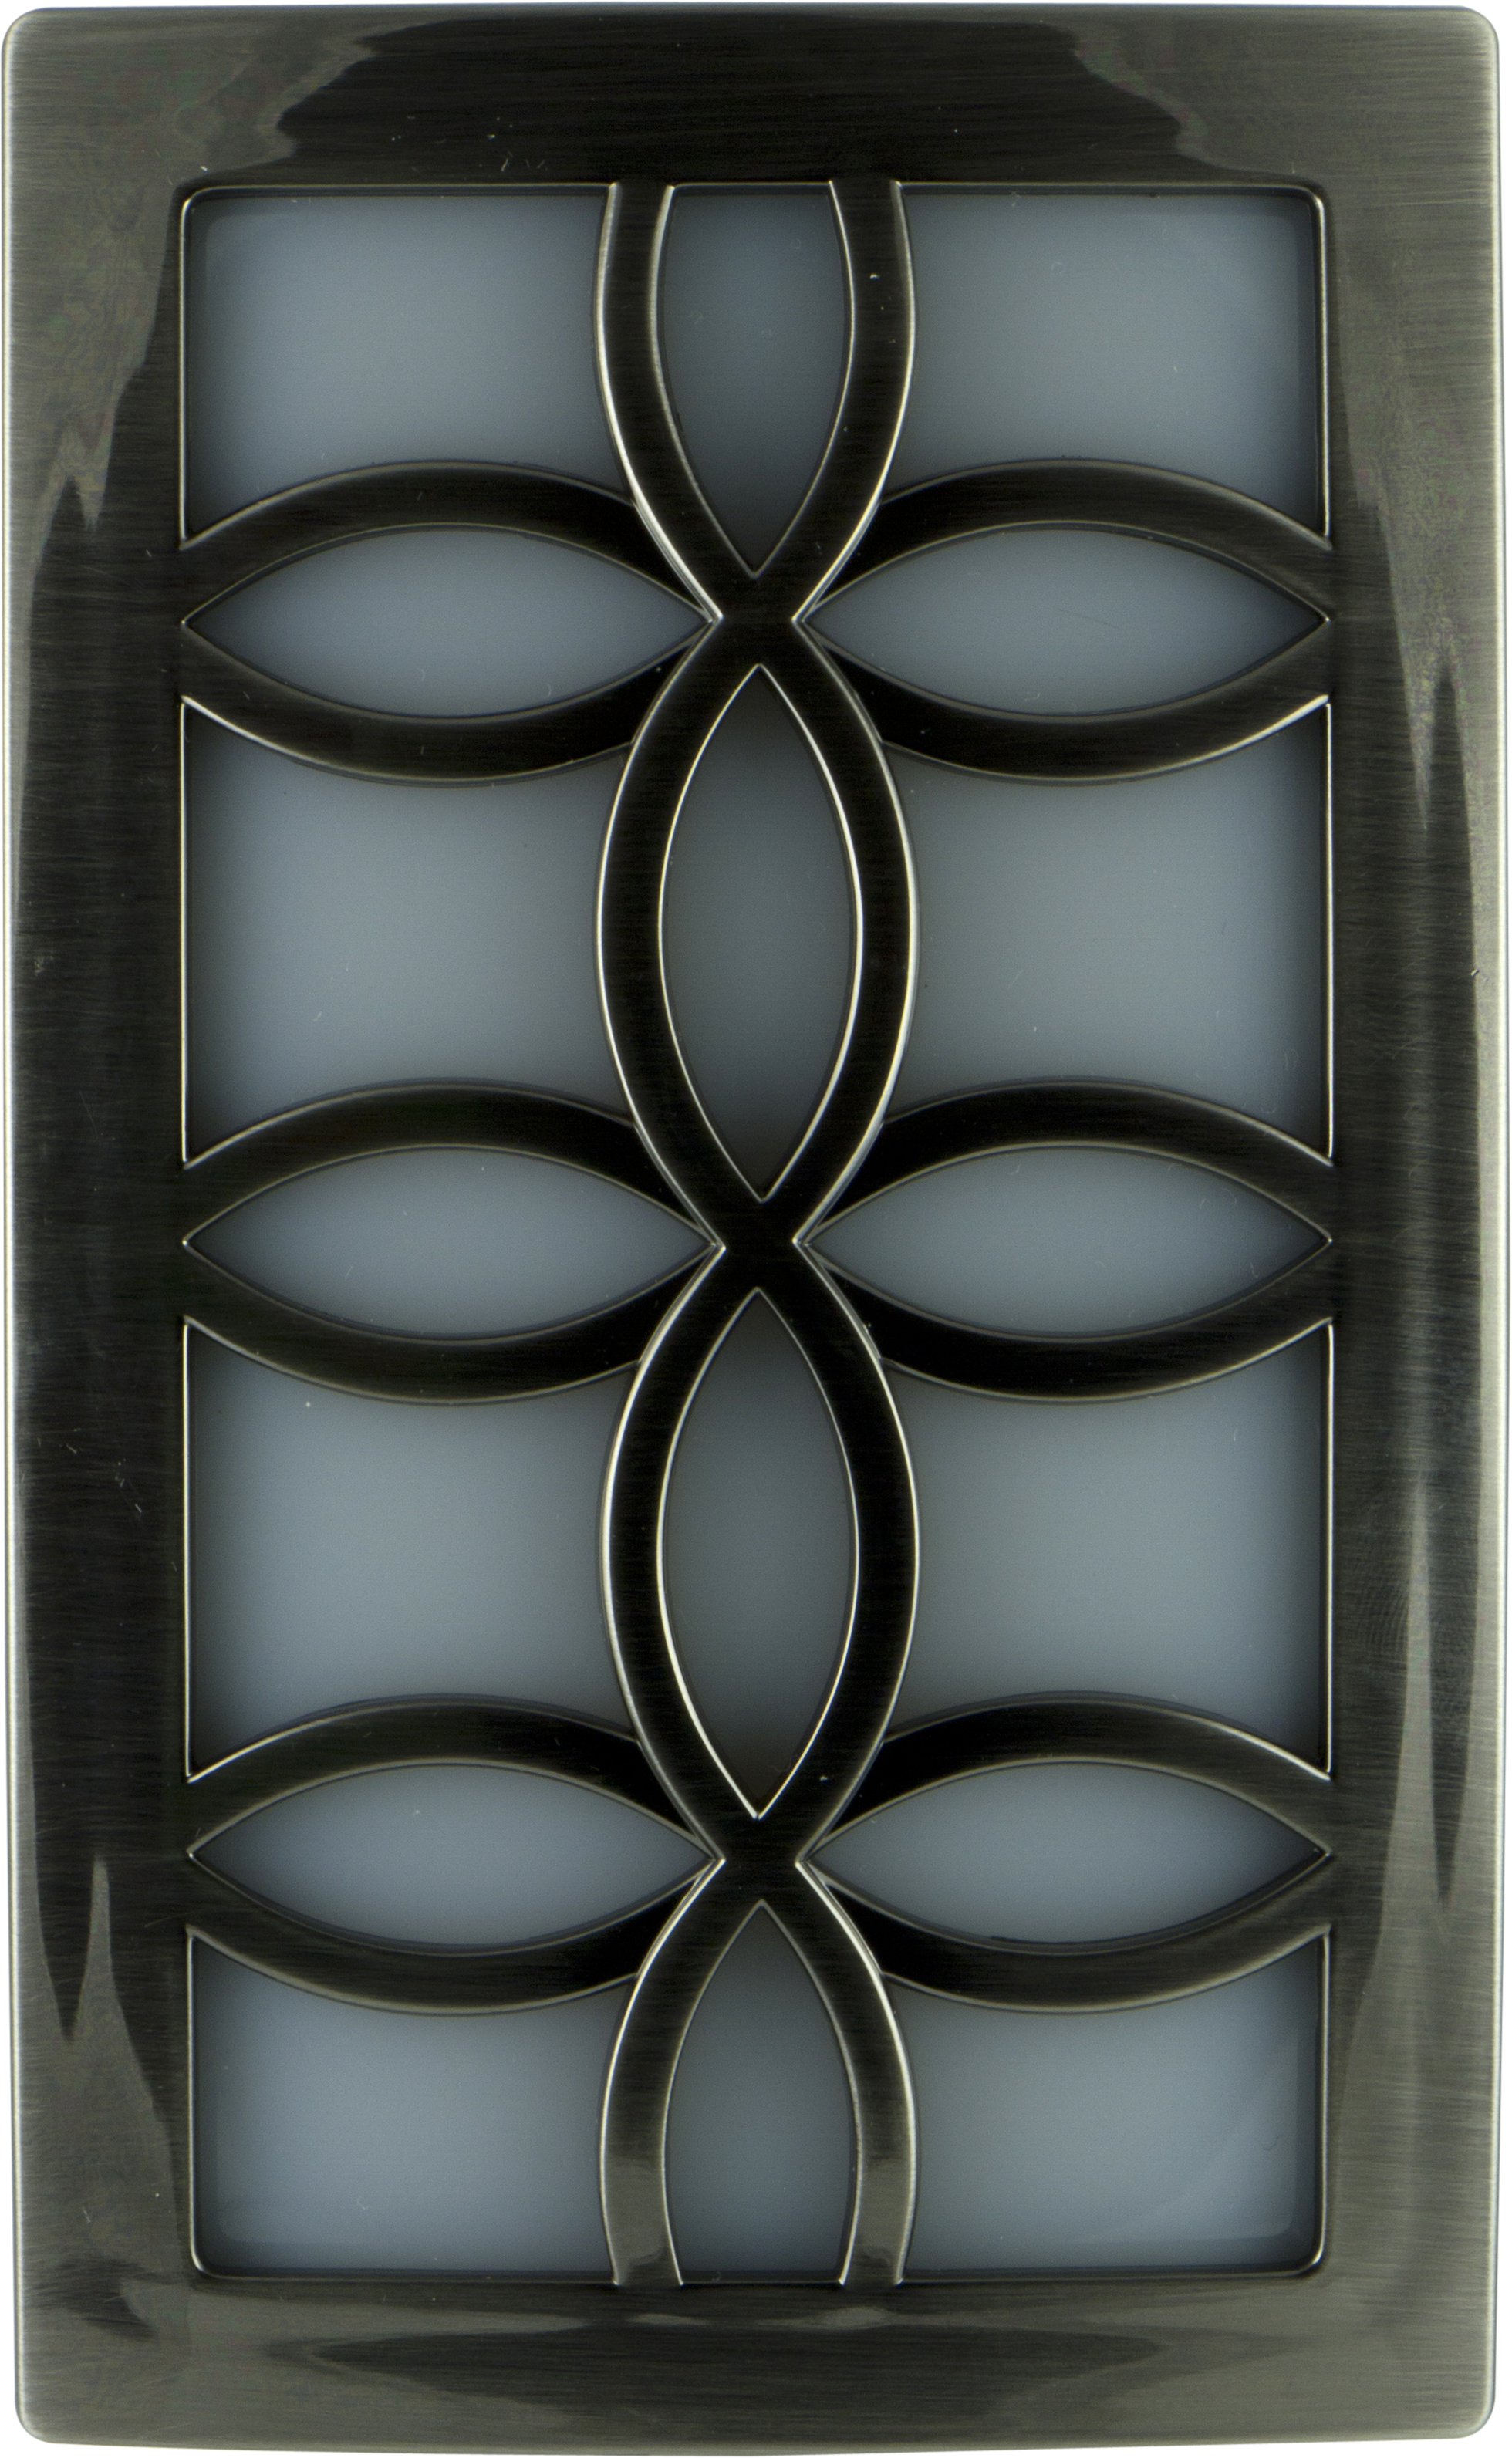 GE CoverLite LED Plug-In Night Light, Leaves Design, Brushed Nickel, 11257 by Jasco Products Company, LLC